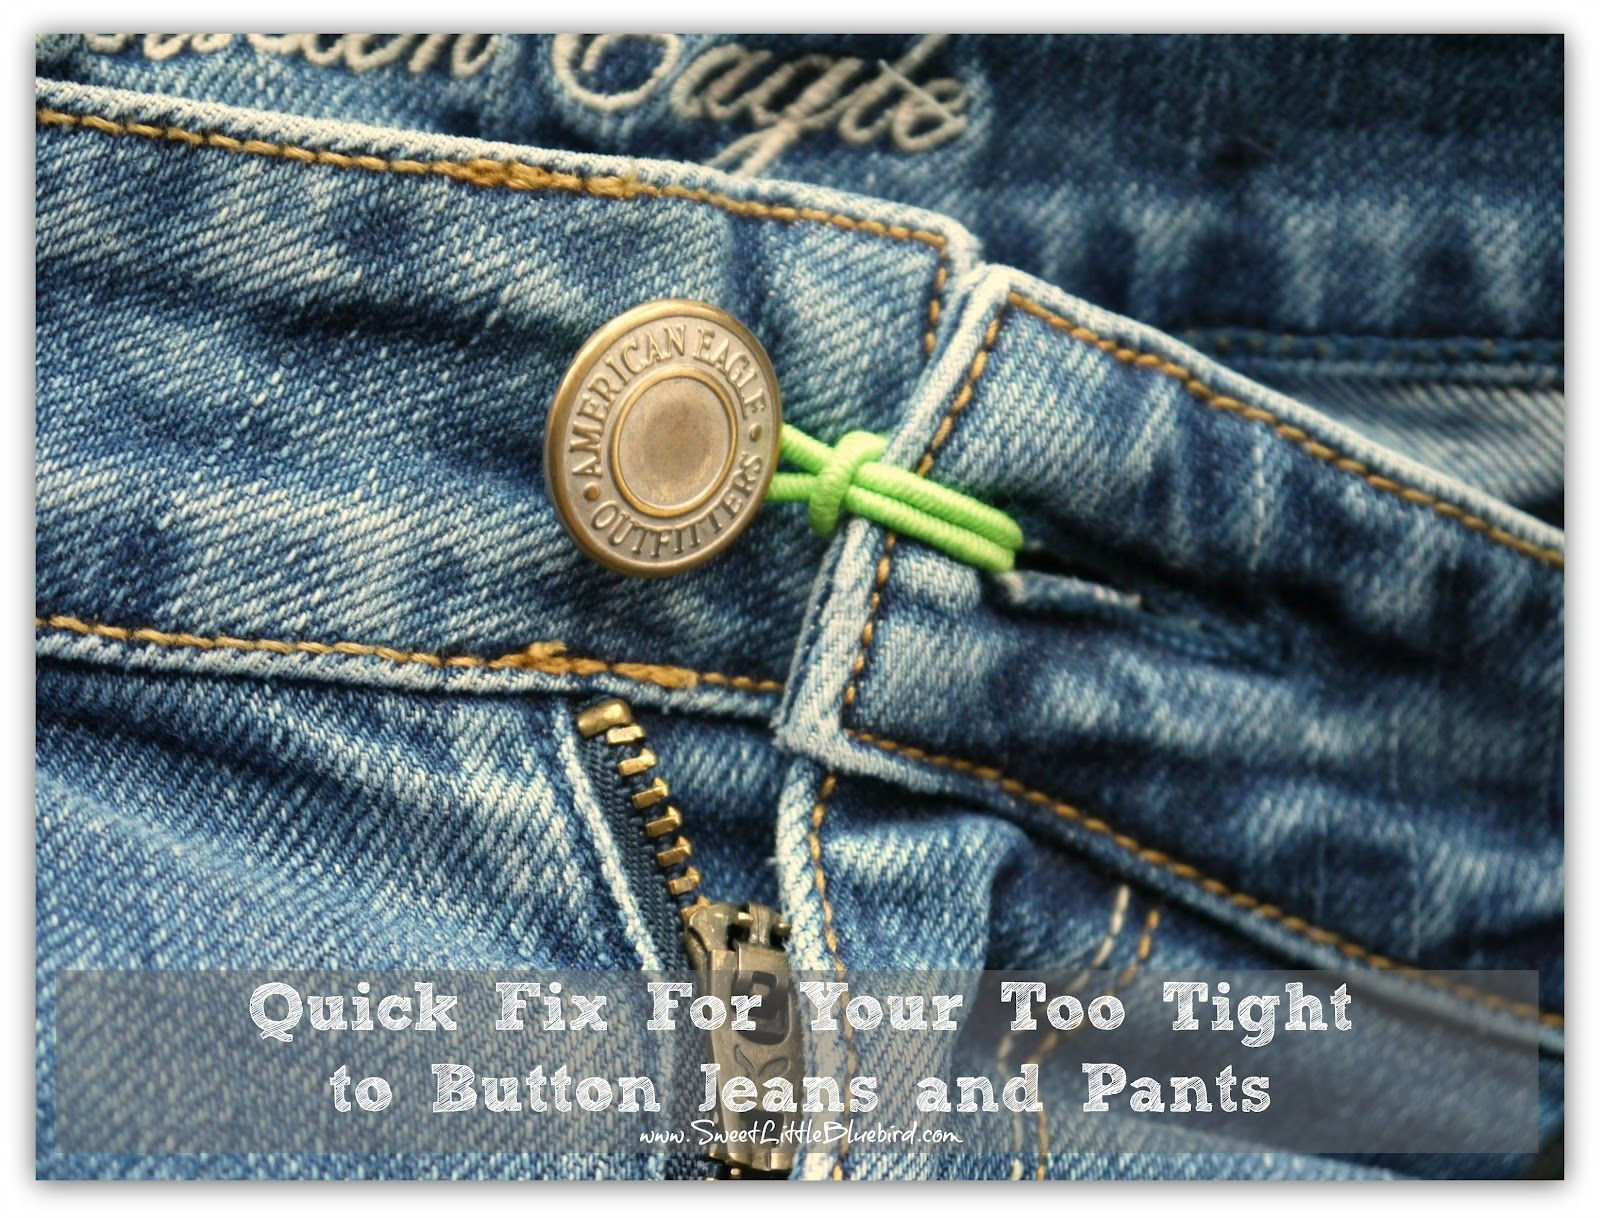 ead7b1dba95 Quick Fix for too tight to button jeans/pants (great pregnancy tip so you  can be comfy in your jeans a few extra weeks) GENIUS!!